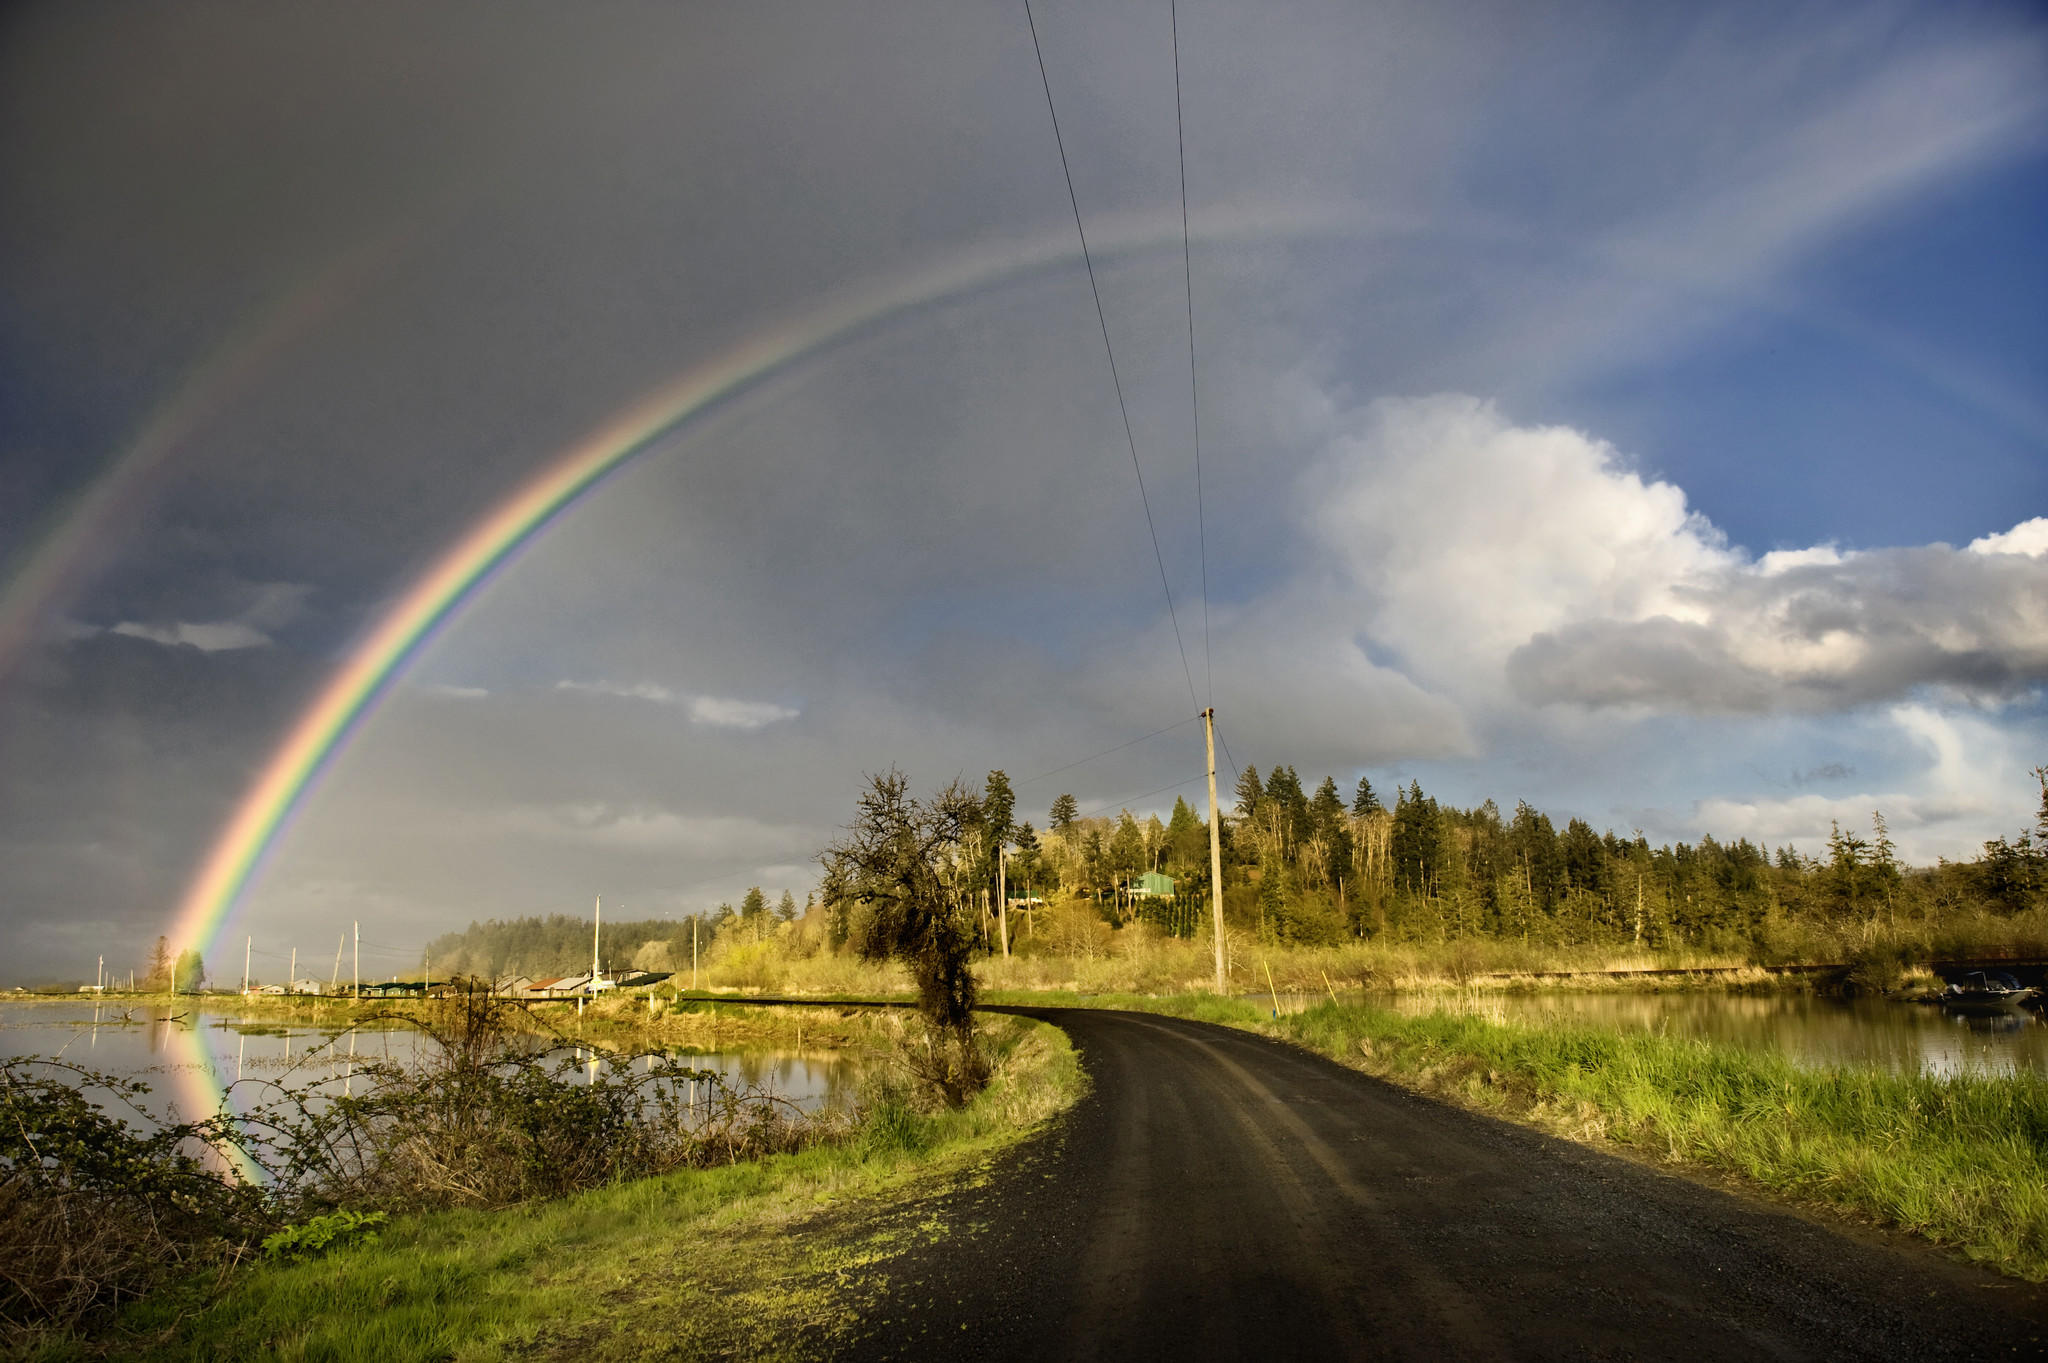 A double rainbow near Astoria, Ore. (www.jodymillerphoto.com / Getty Images)